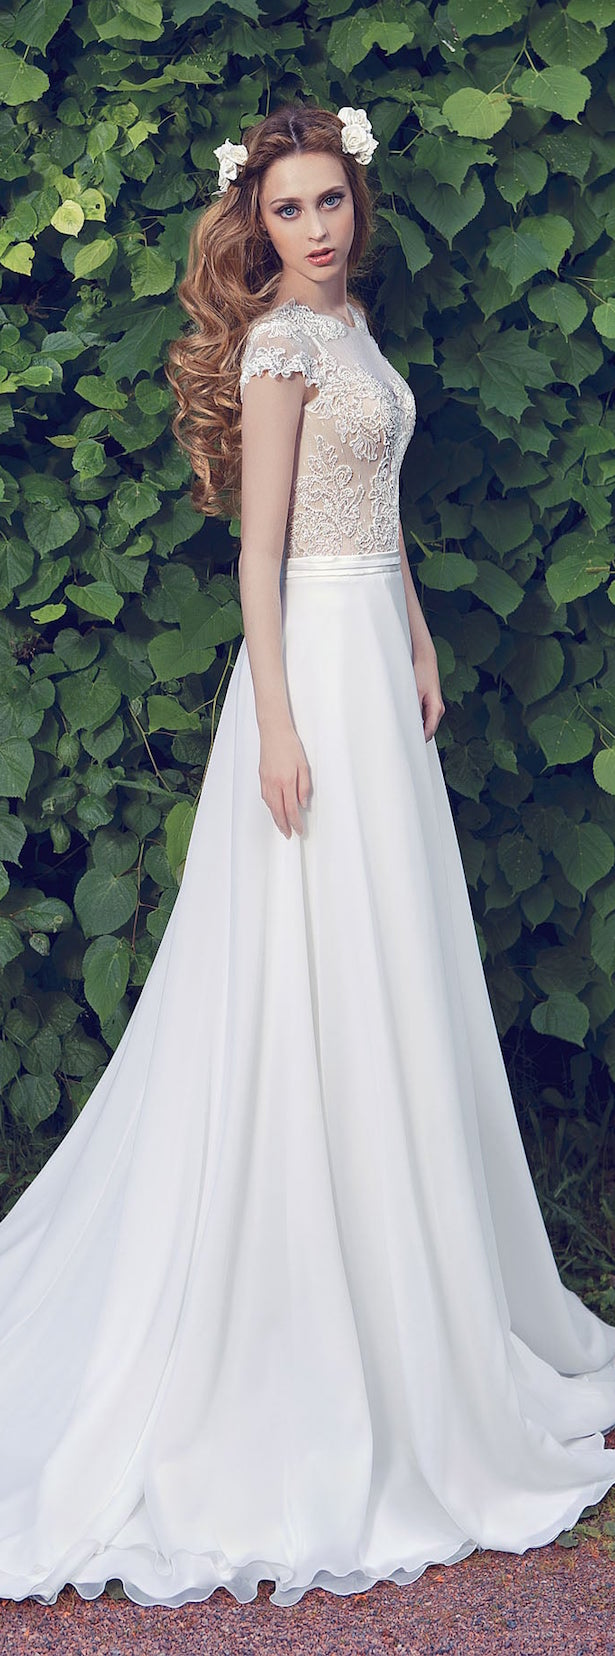 Milva 2016 Wedding Dresses – Fairy Gardens Collection | Wedding